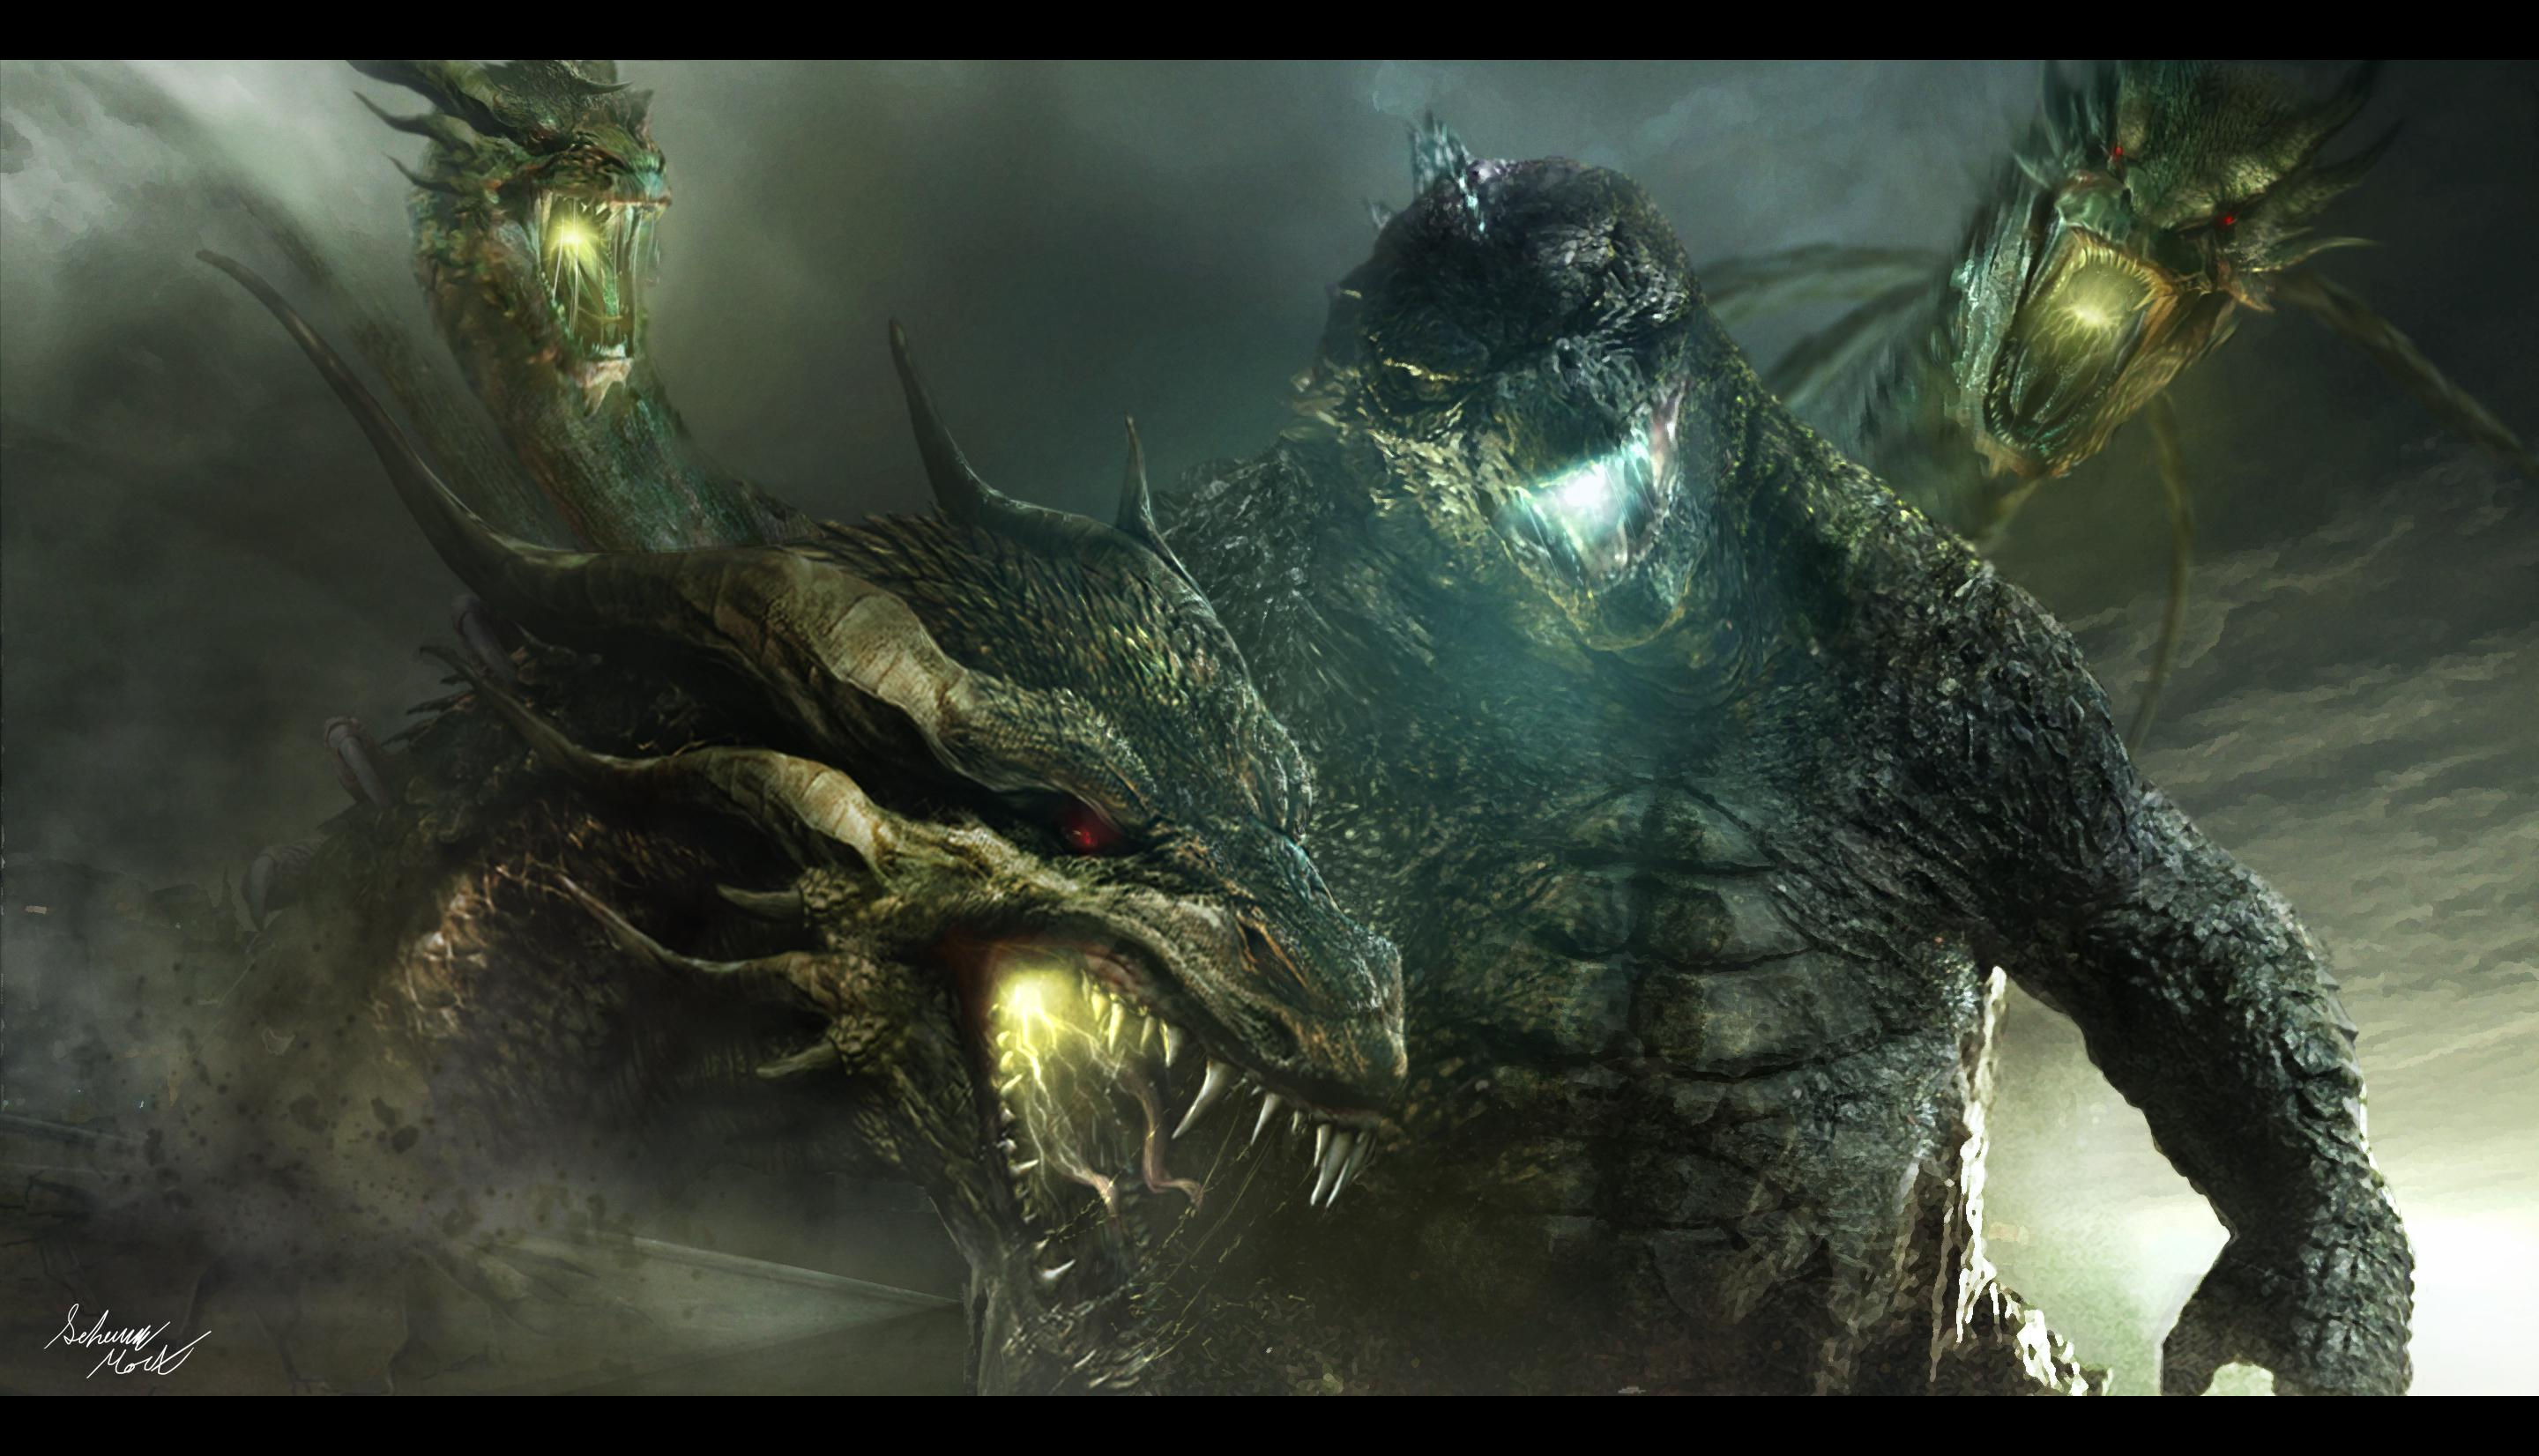 Movie Wallpaper of Godzilla King of the Monsters HD